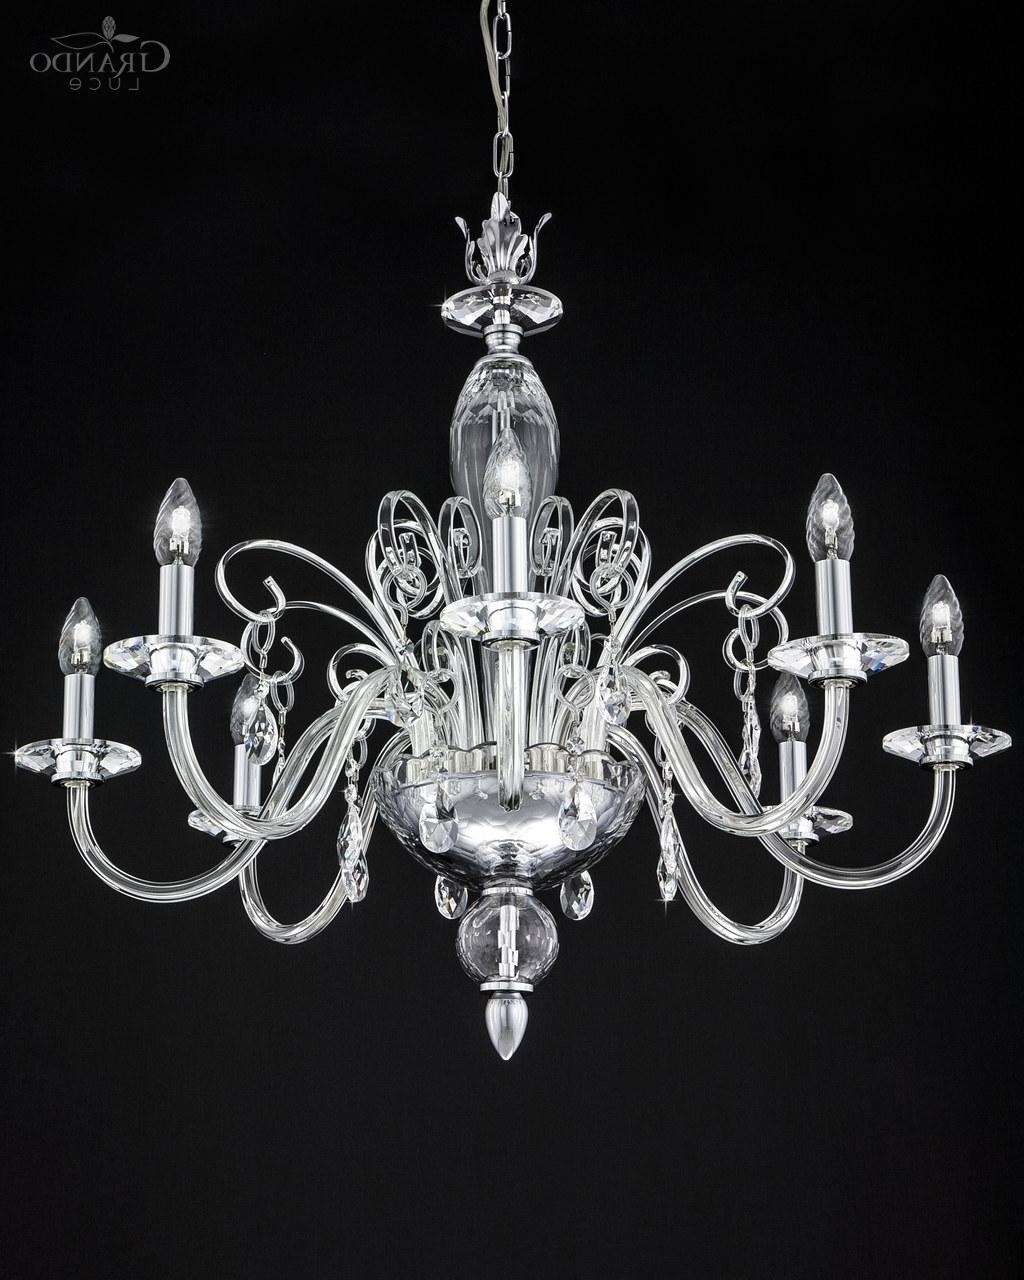 Crystal And Chrome Chandeliers Regarding Most Recently Released 120/ch 8 Chrome Crystal Chandelier With Swarovski Elements (View 4 of 20)